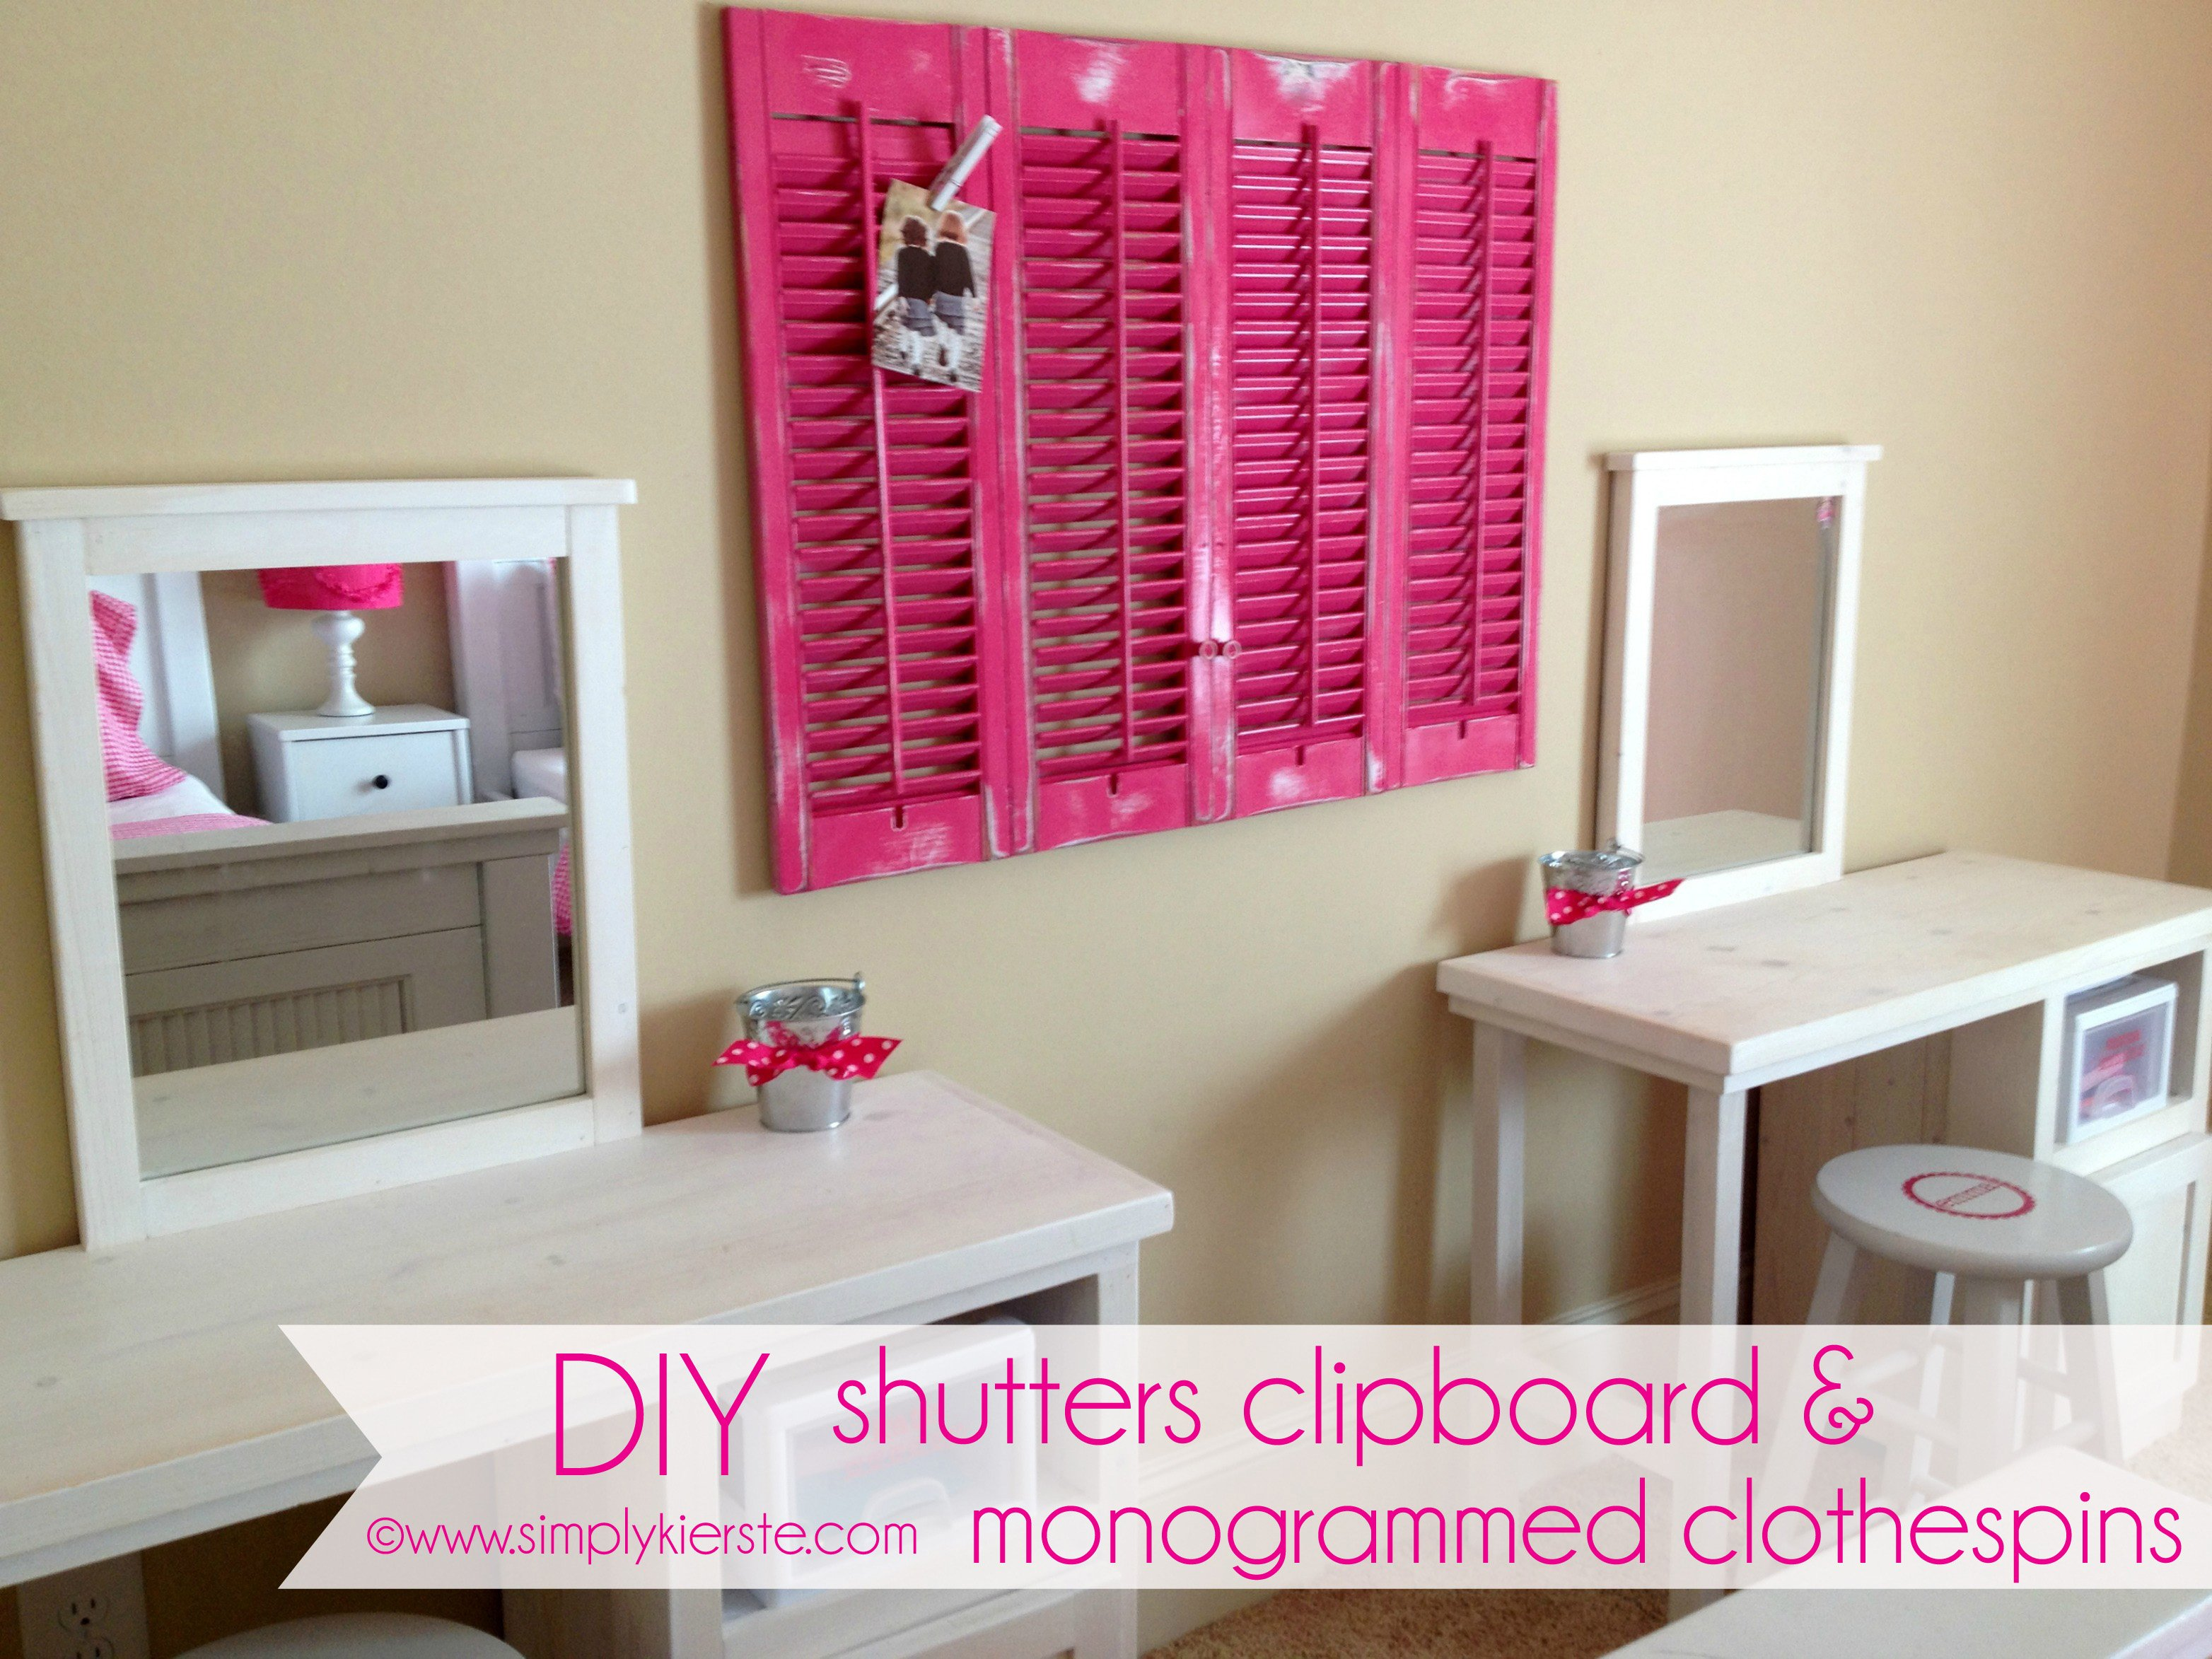 bedroom diys. DIY Shutters Clipboard Bedroom Diys U